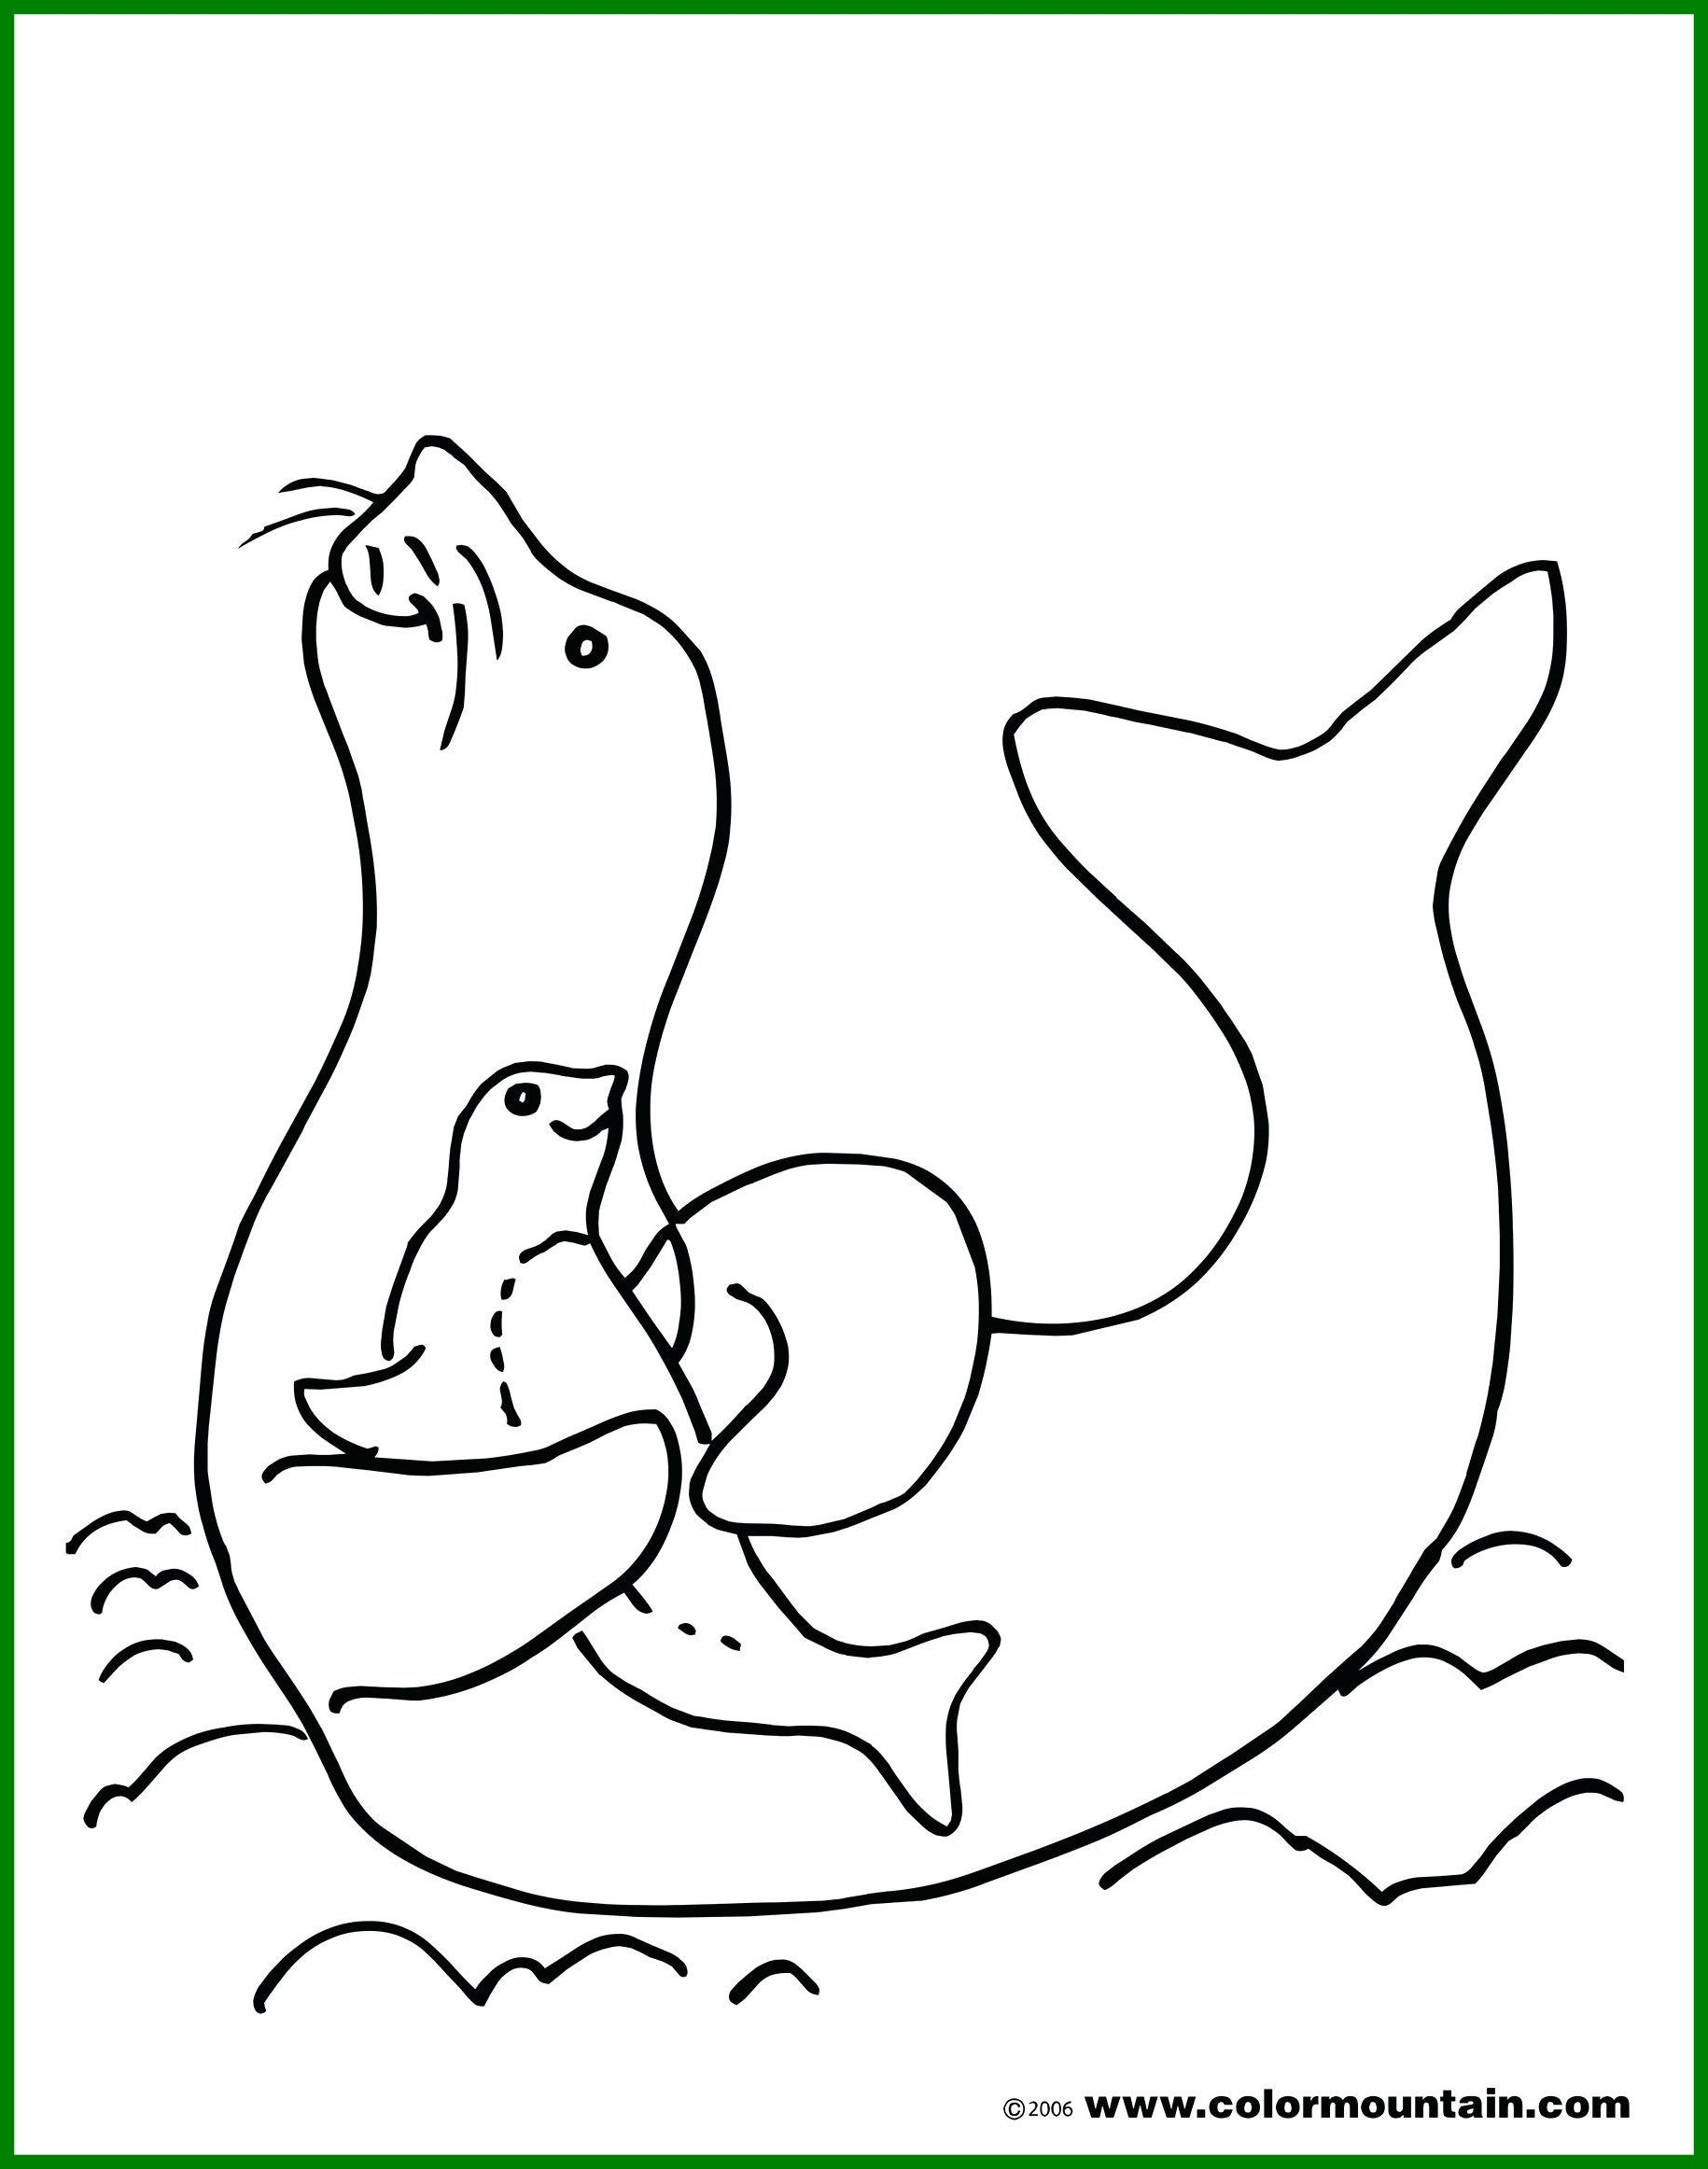 1830x2324 Awesome Seal Coloring Page Unique Animals Monk Printable Image